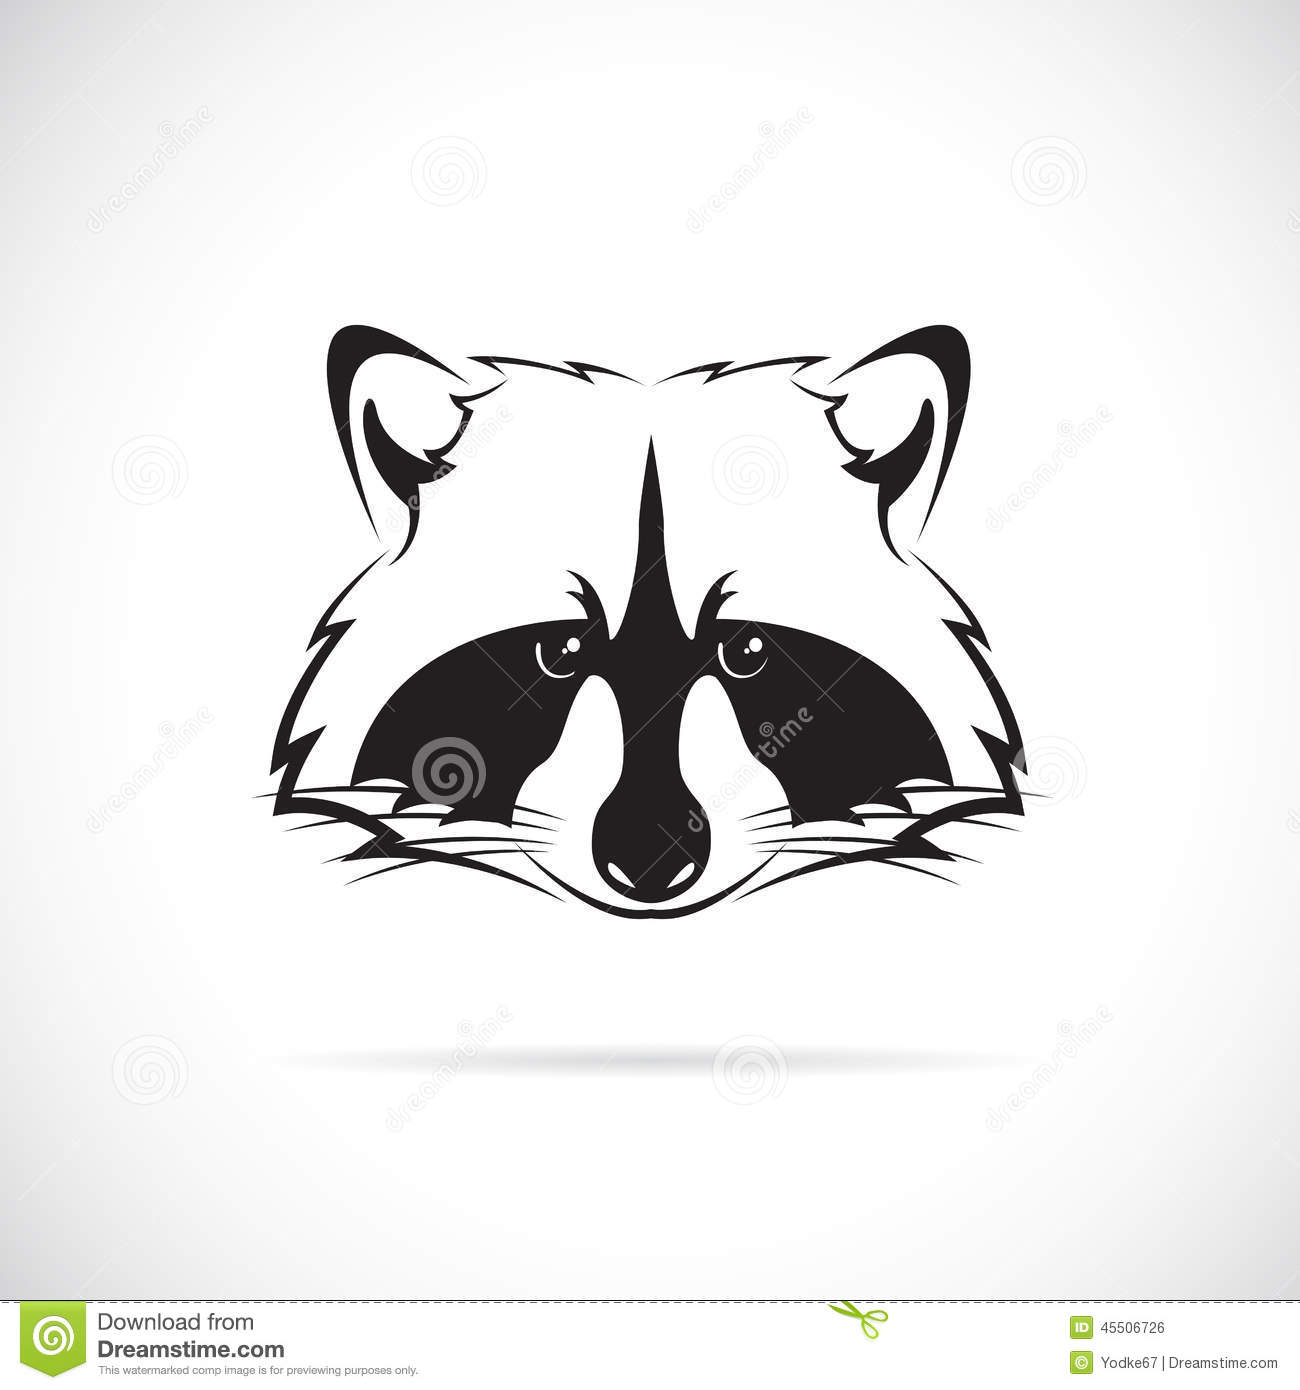 Line Drawing Raccoon : Vector image of a raccoon face stock illustration